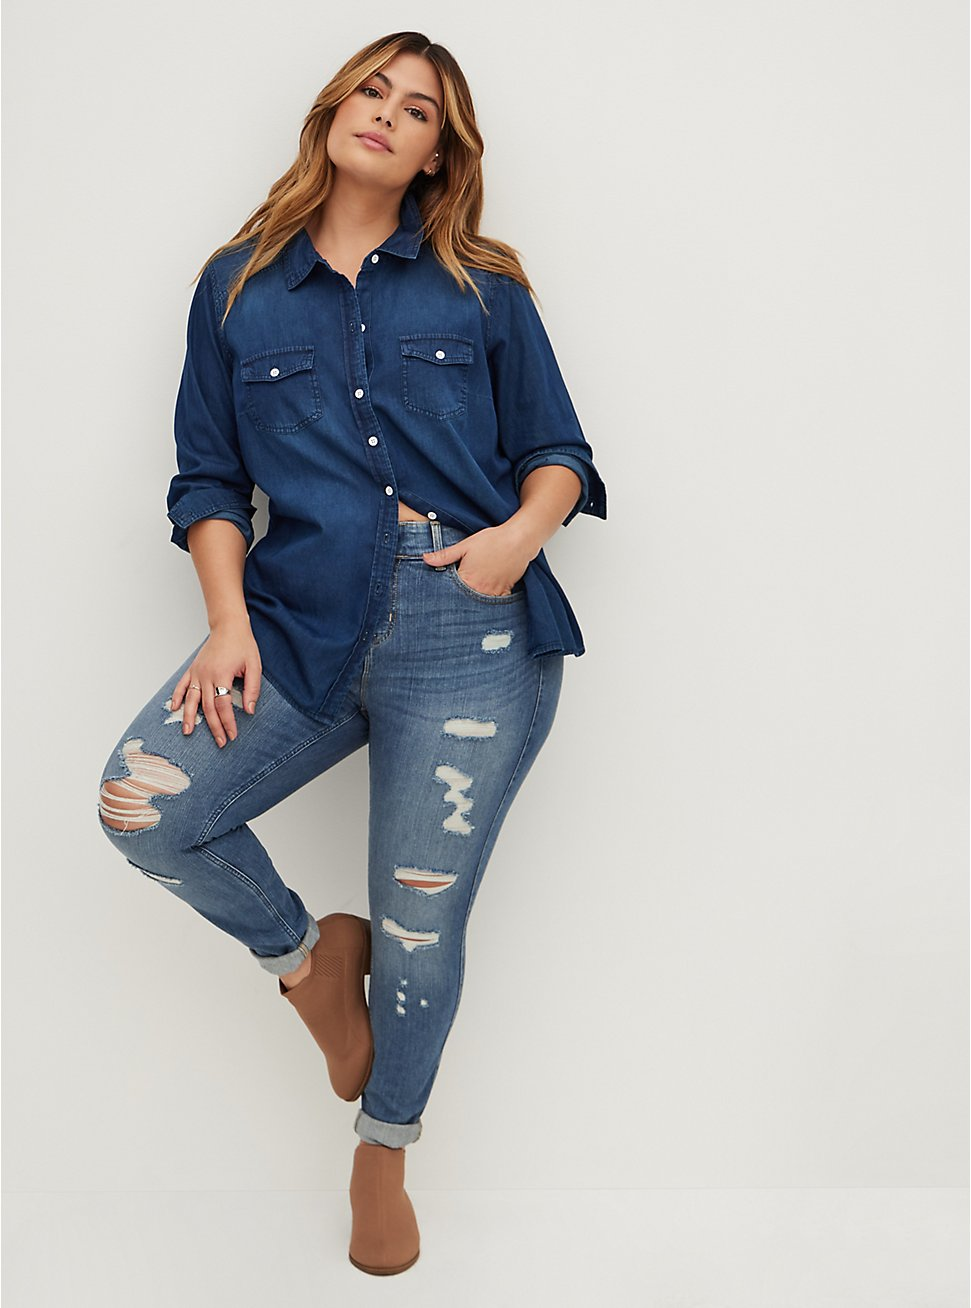 Taylor - Dark Denim Button-Up Shirt, DARK DENIM, hi-res